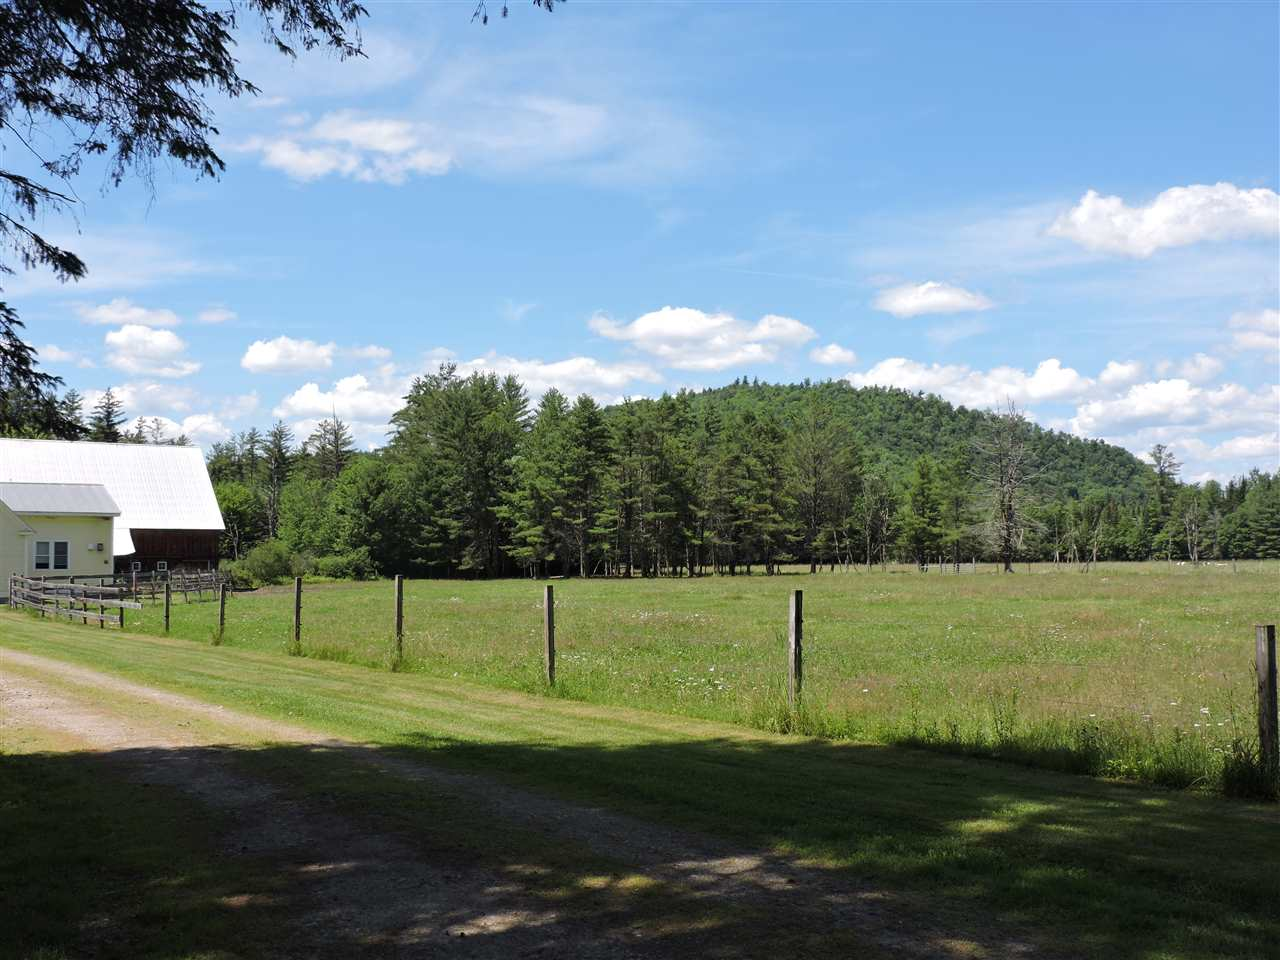 2277 A  Route 102 Guildhall, VT 05905